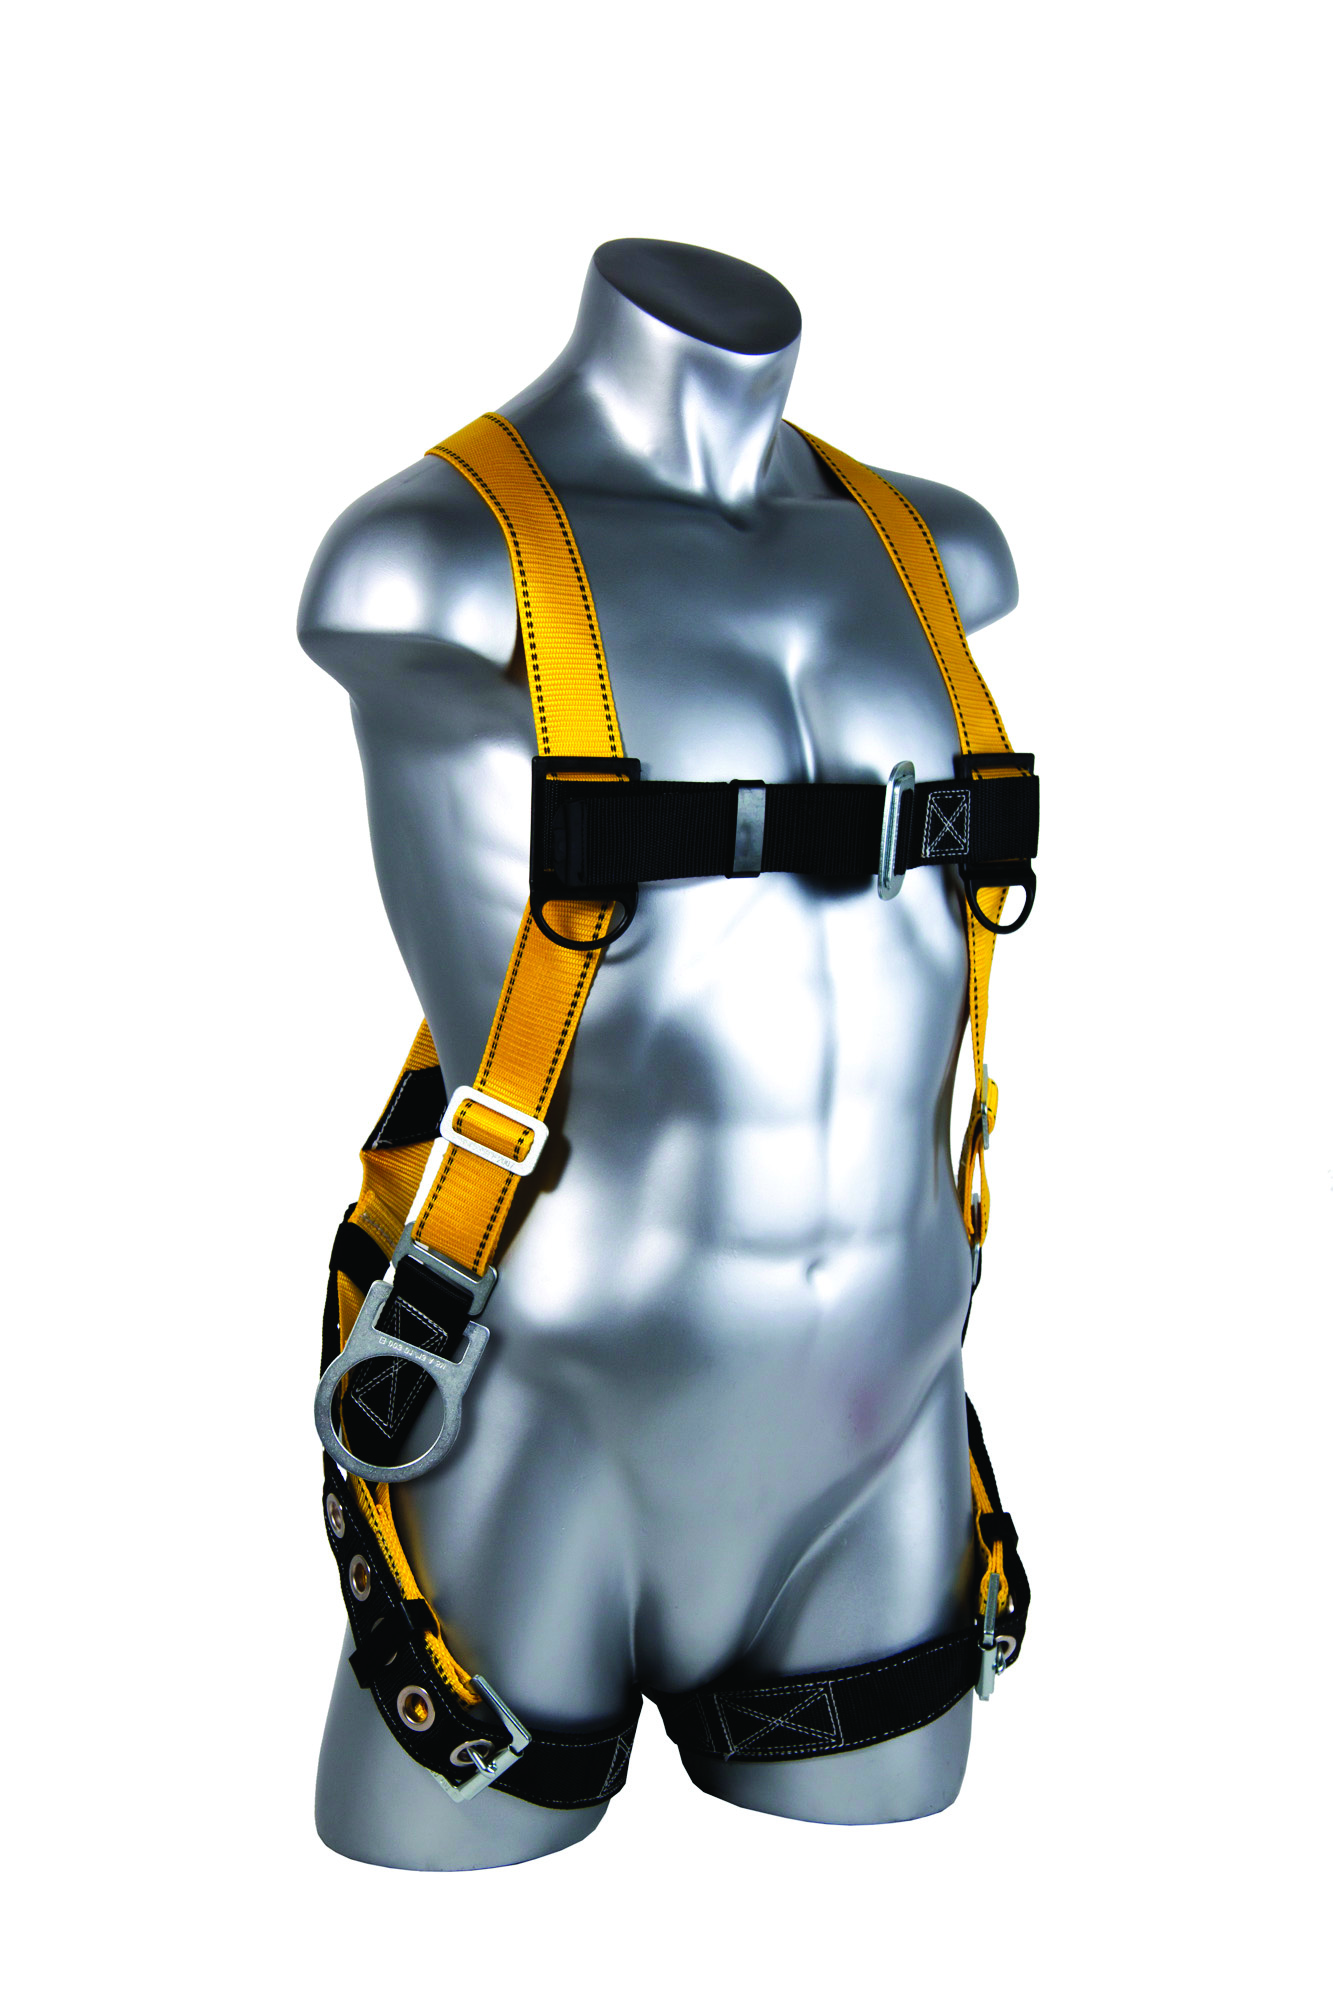 01705 - Velocity Full-Body Harnesses-Velocity Full-Body Harnesses-Size: S-L, Pass-Through Chest Buckles, Leg Tongue Buckles, Side D-rings----UOM: 1/EA